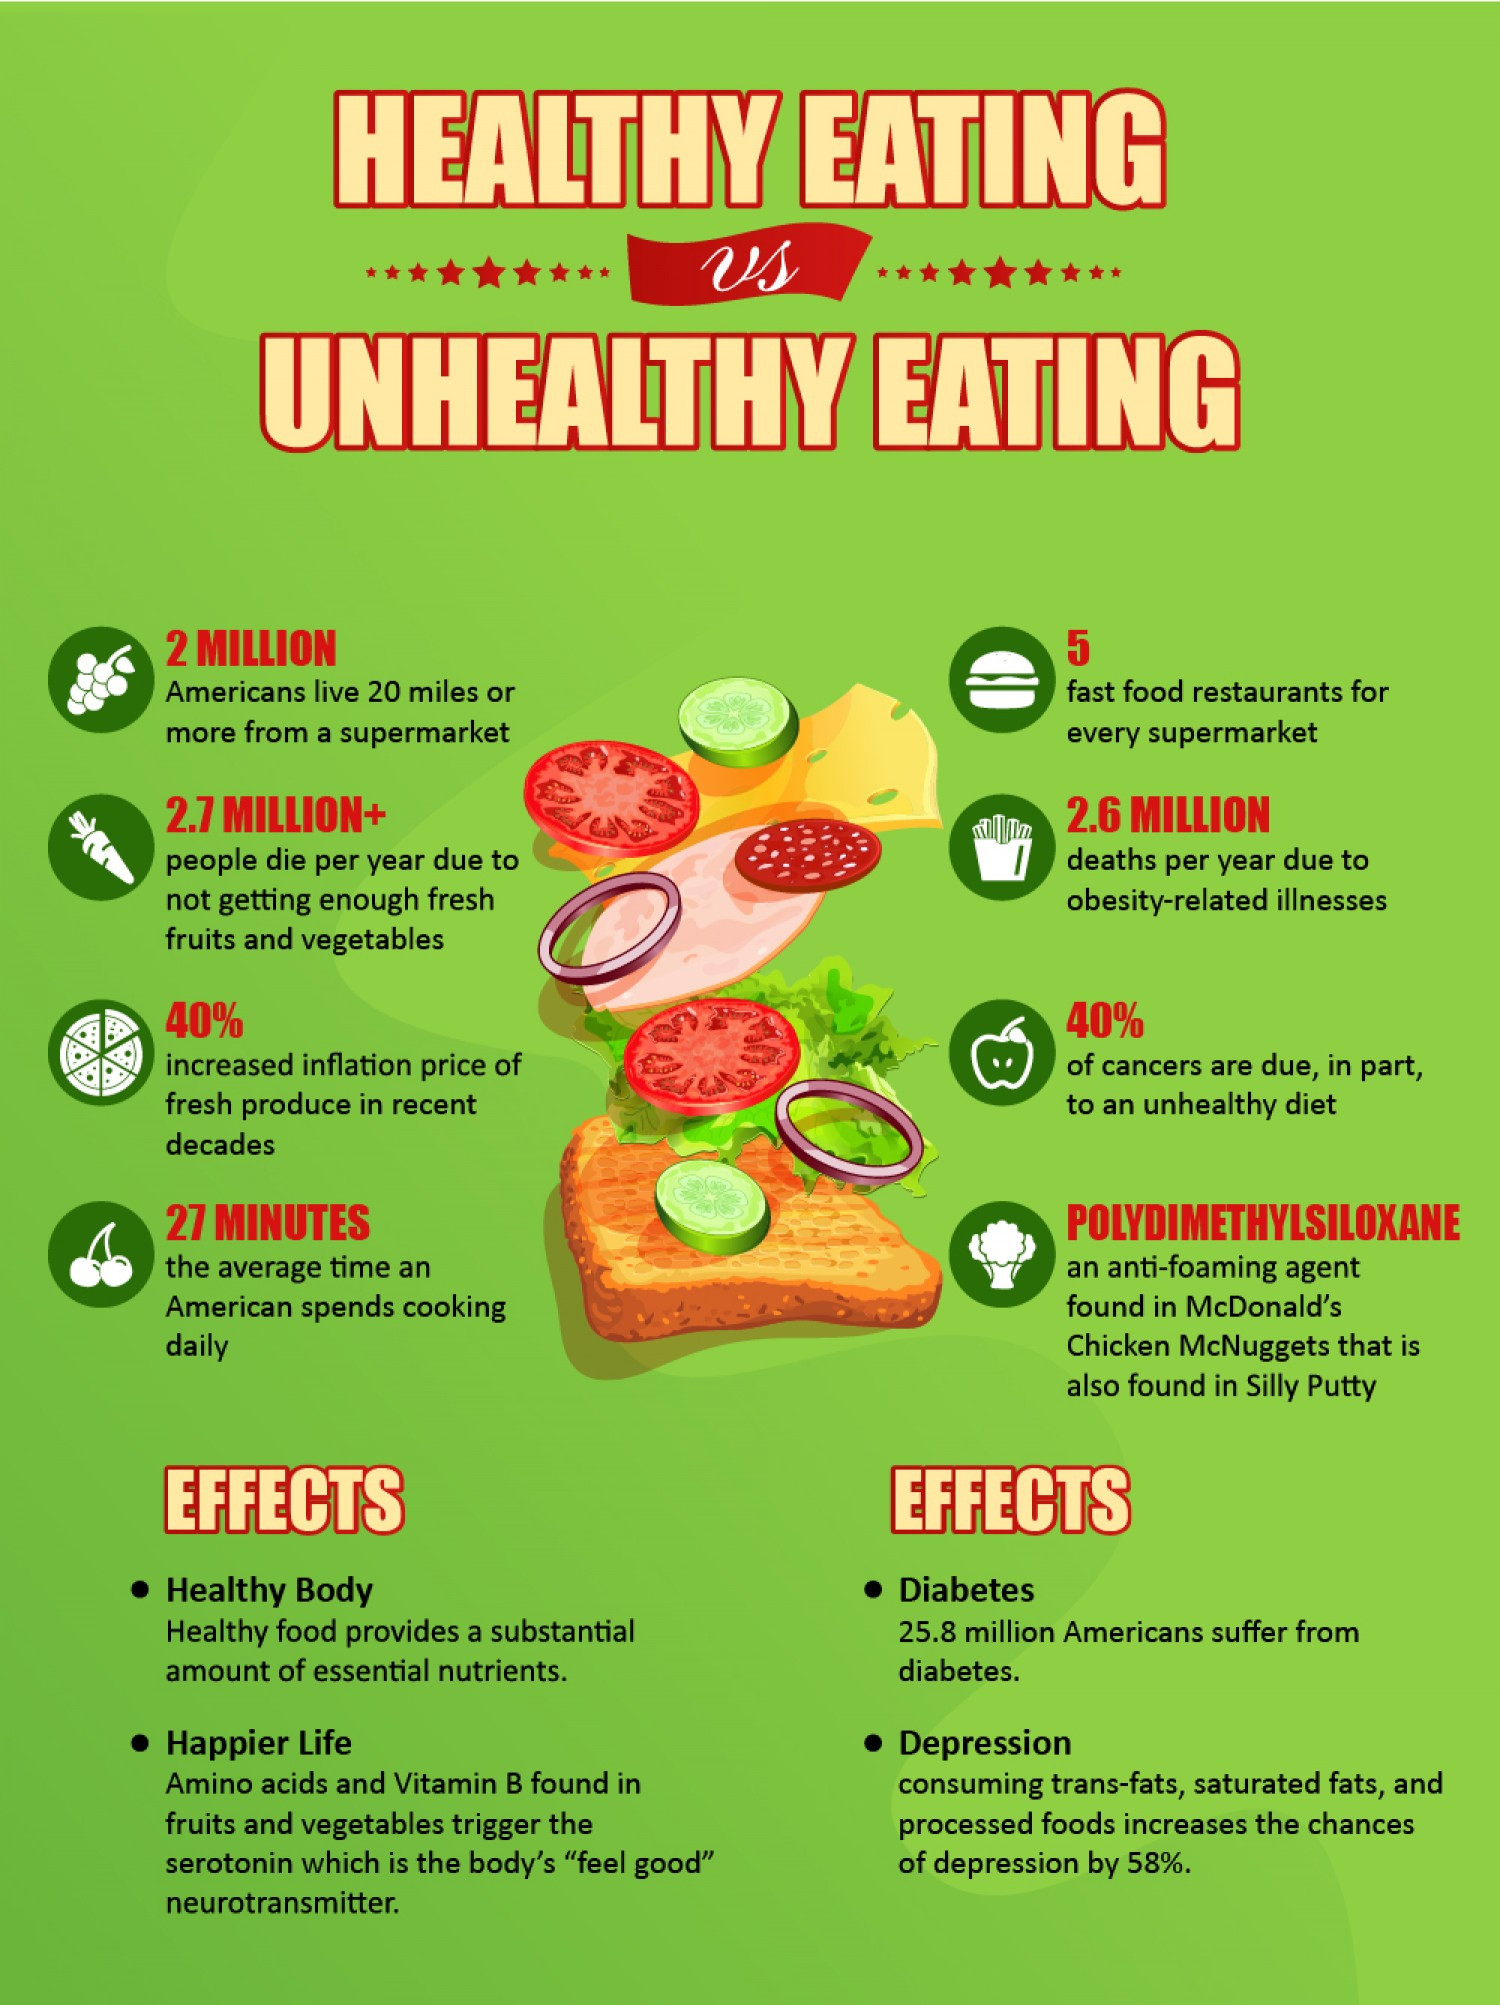 Benefits Of Healthy Snacks  What are the benefits of eating healthy vs eating